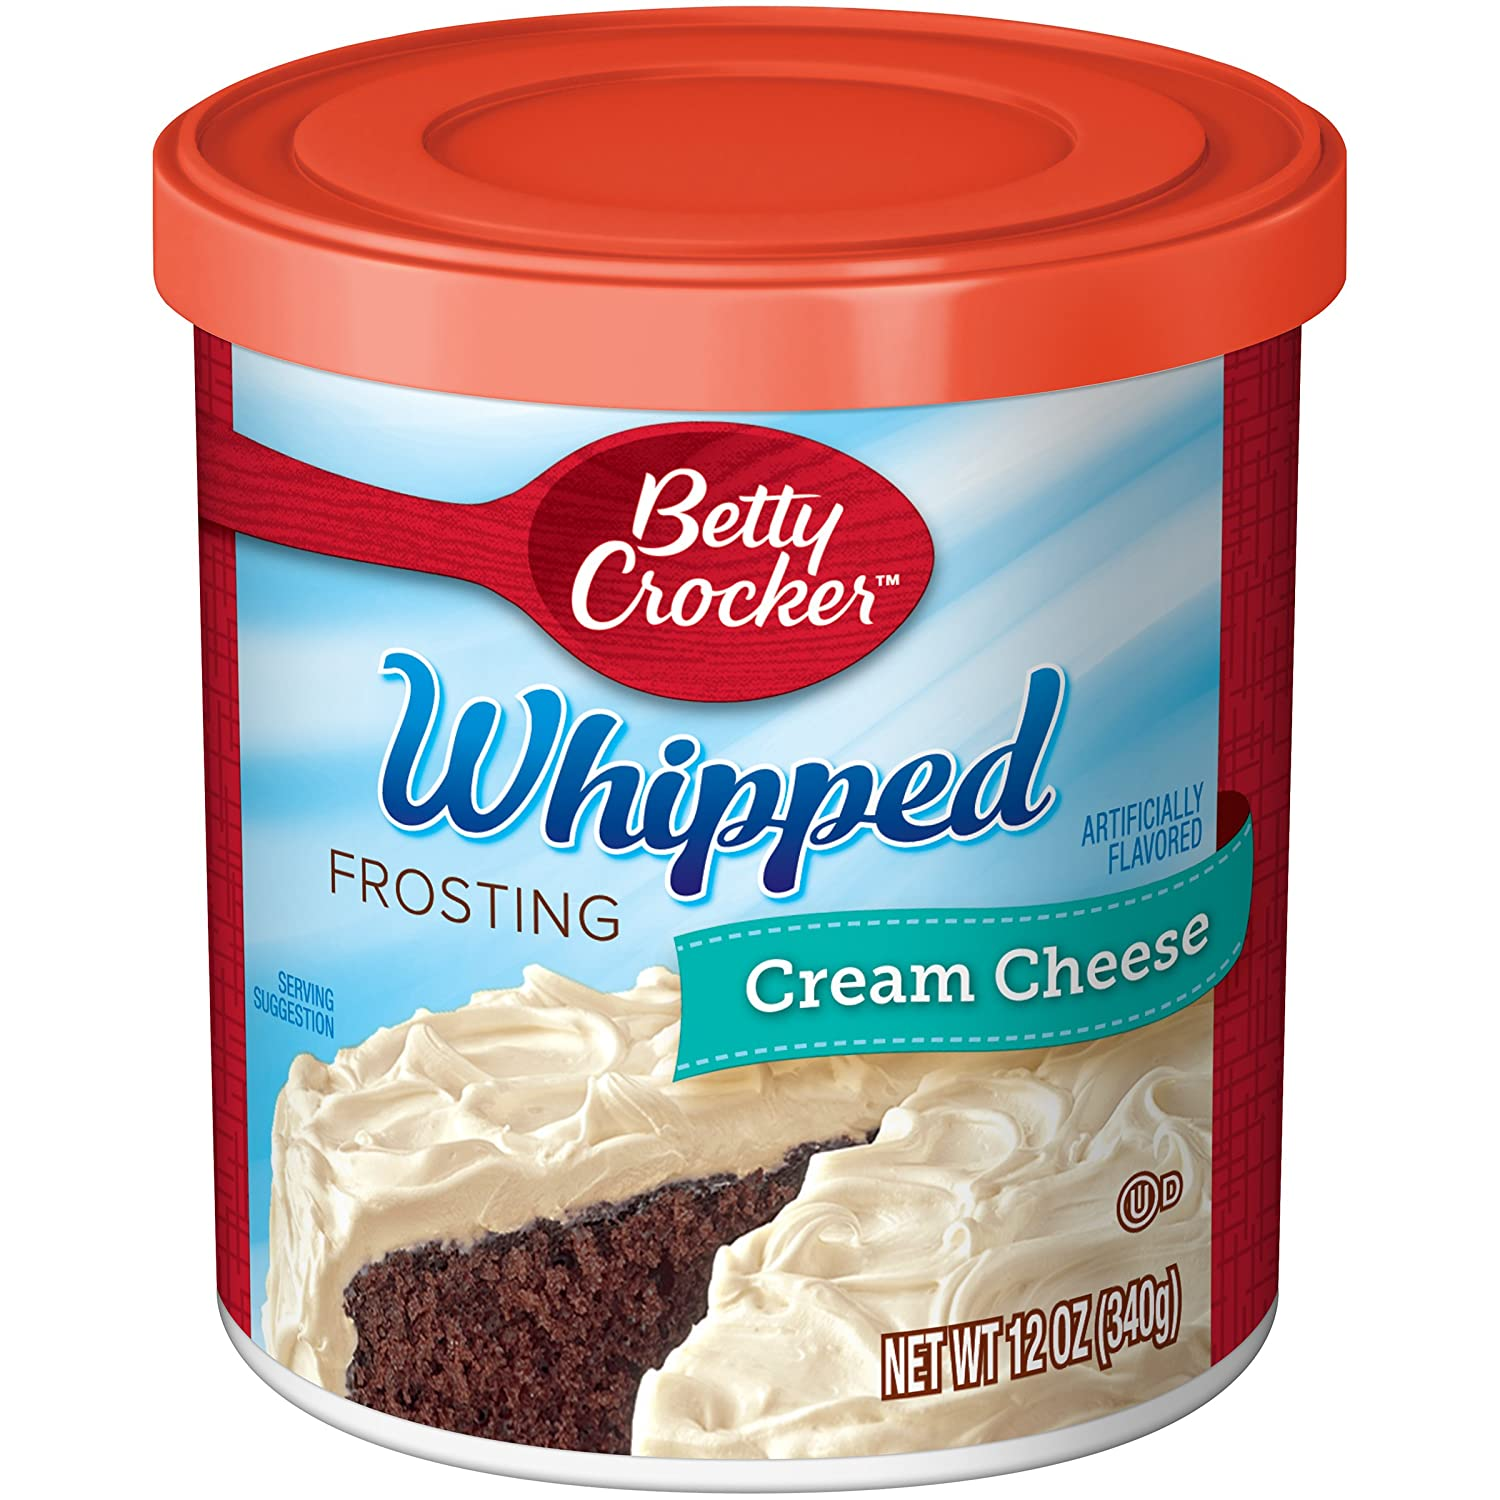 Betty Crocker Whipped Frosting, Cream Cheese, 12 oz Canister